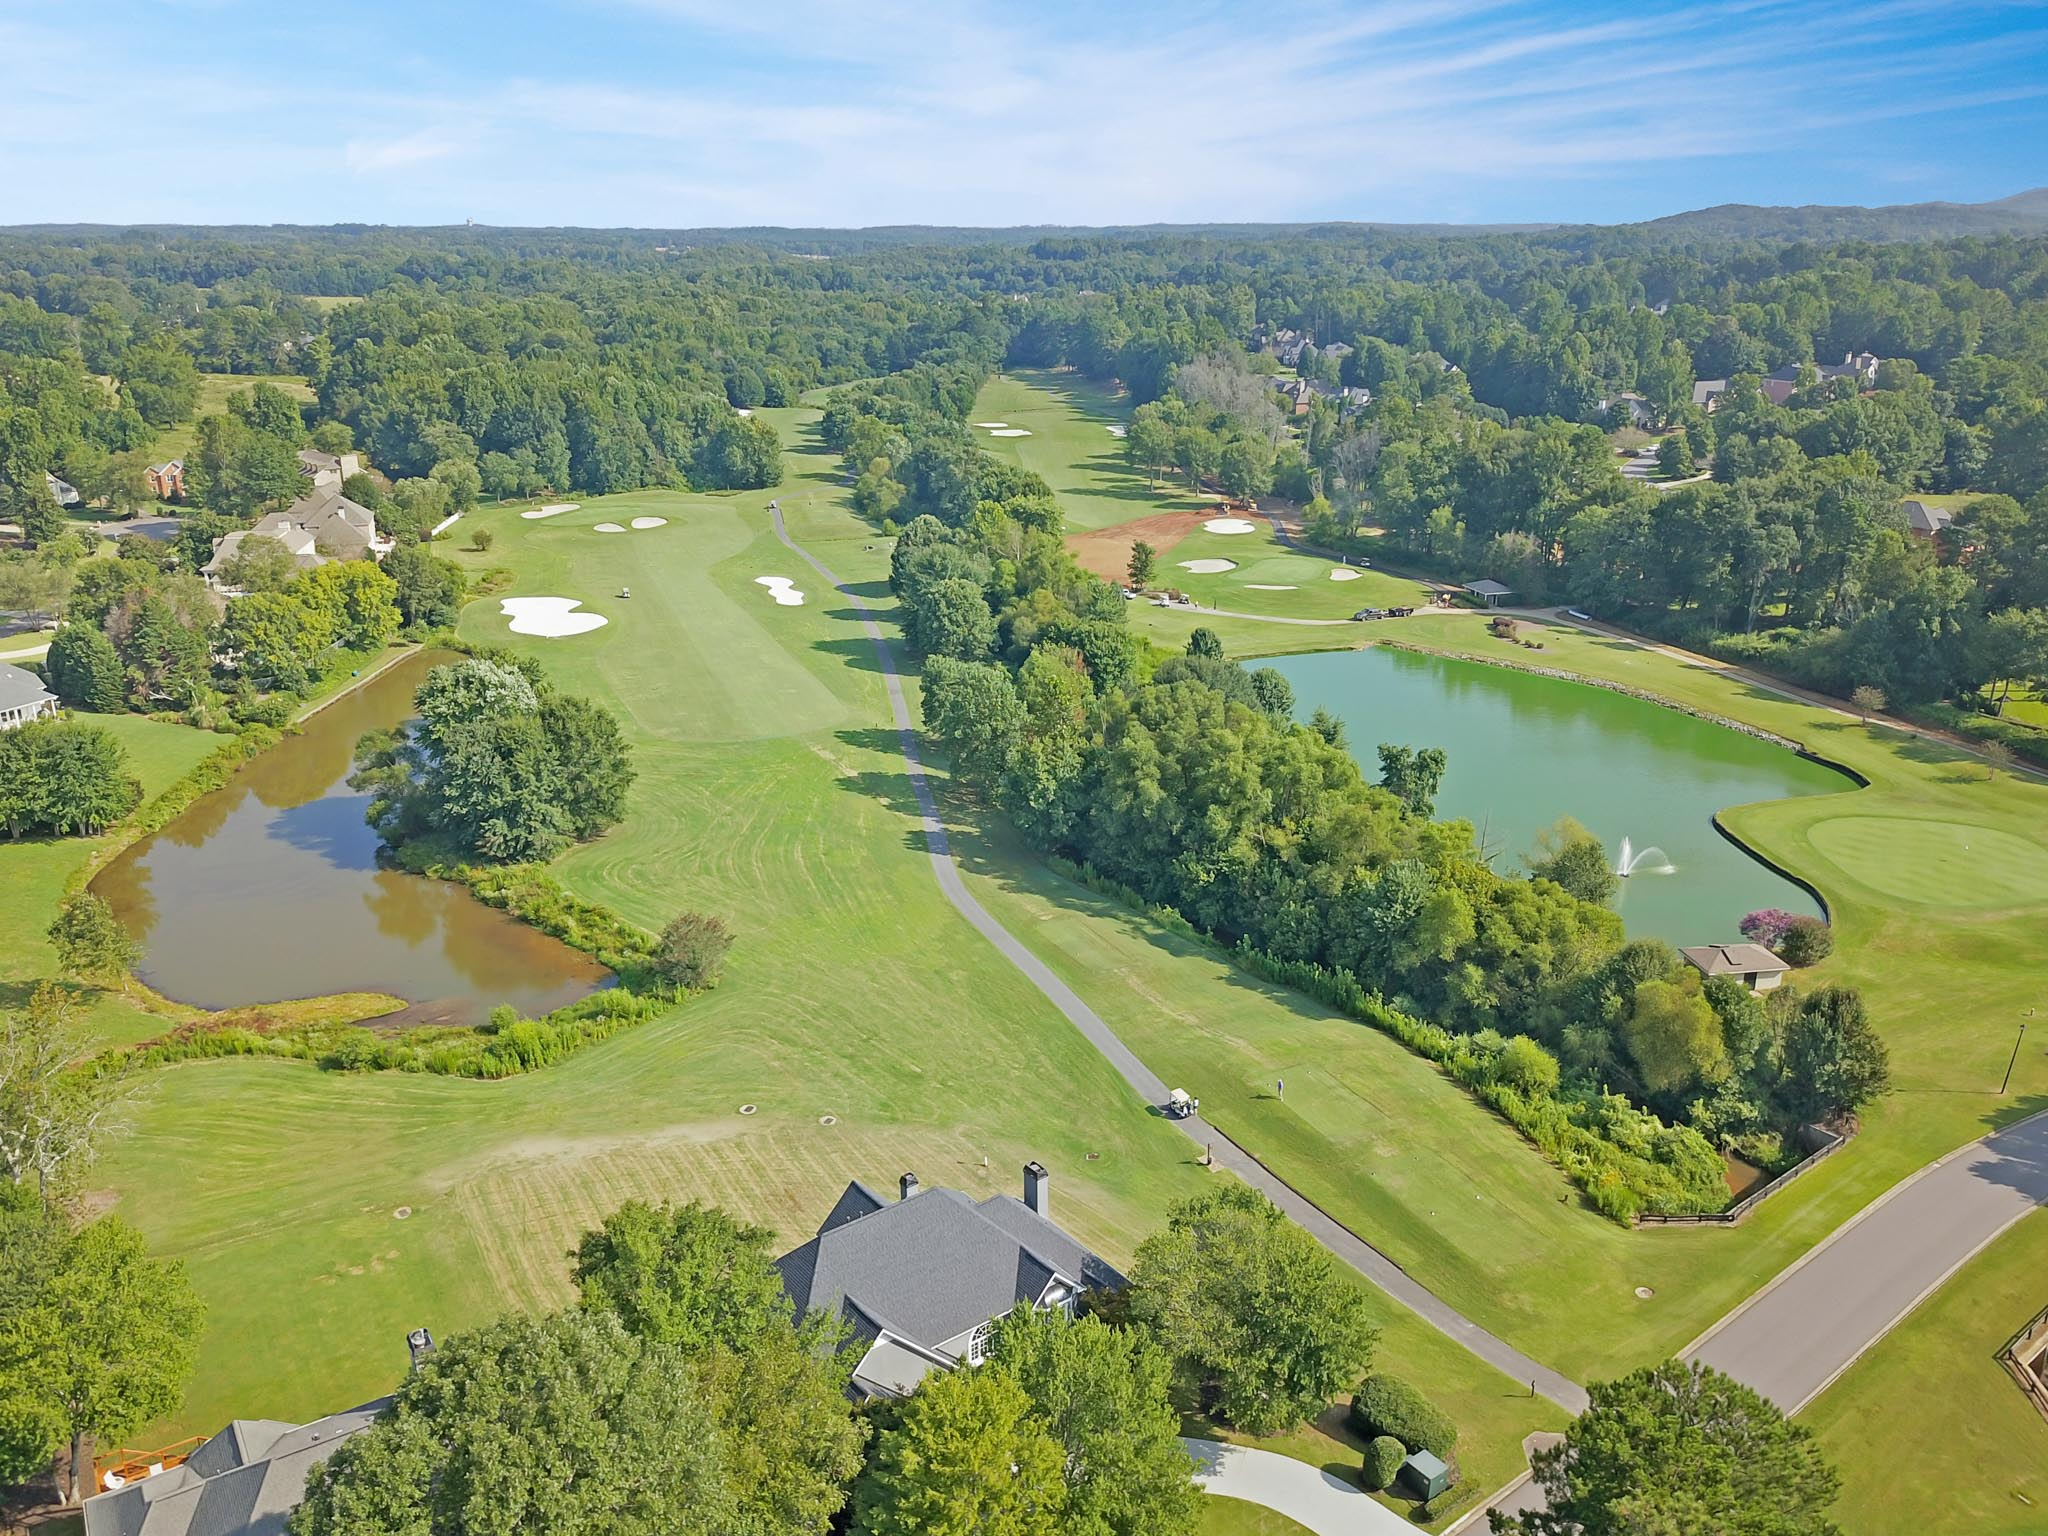 real_estate_photographer_aerial_photography-12.jpg